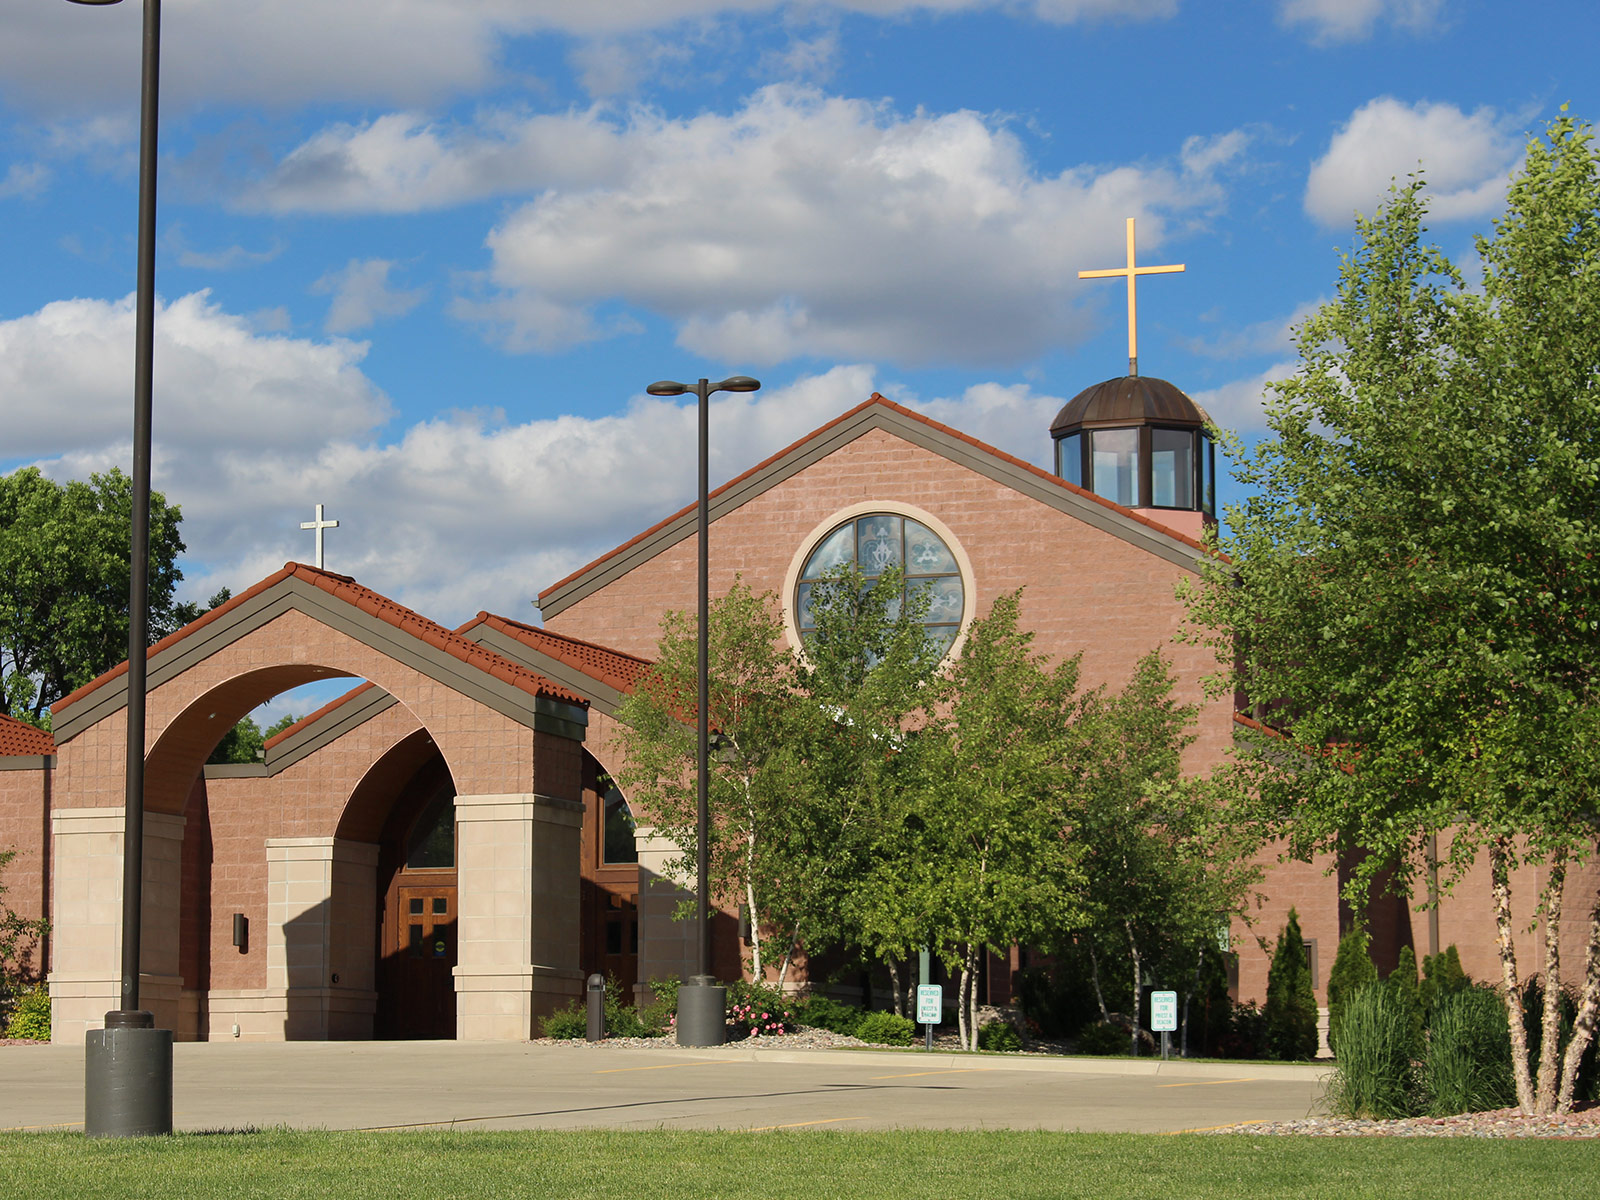 ida-dir-church-sacredheartcatholic1-800x600